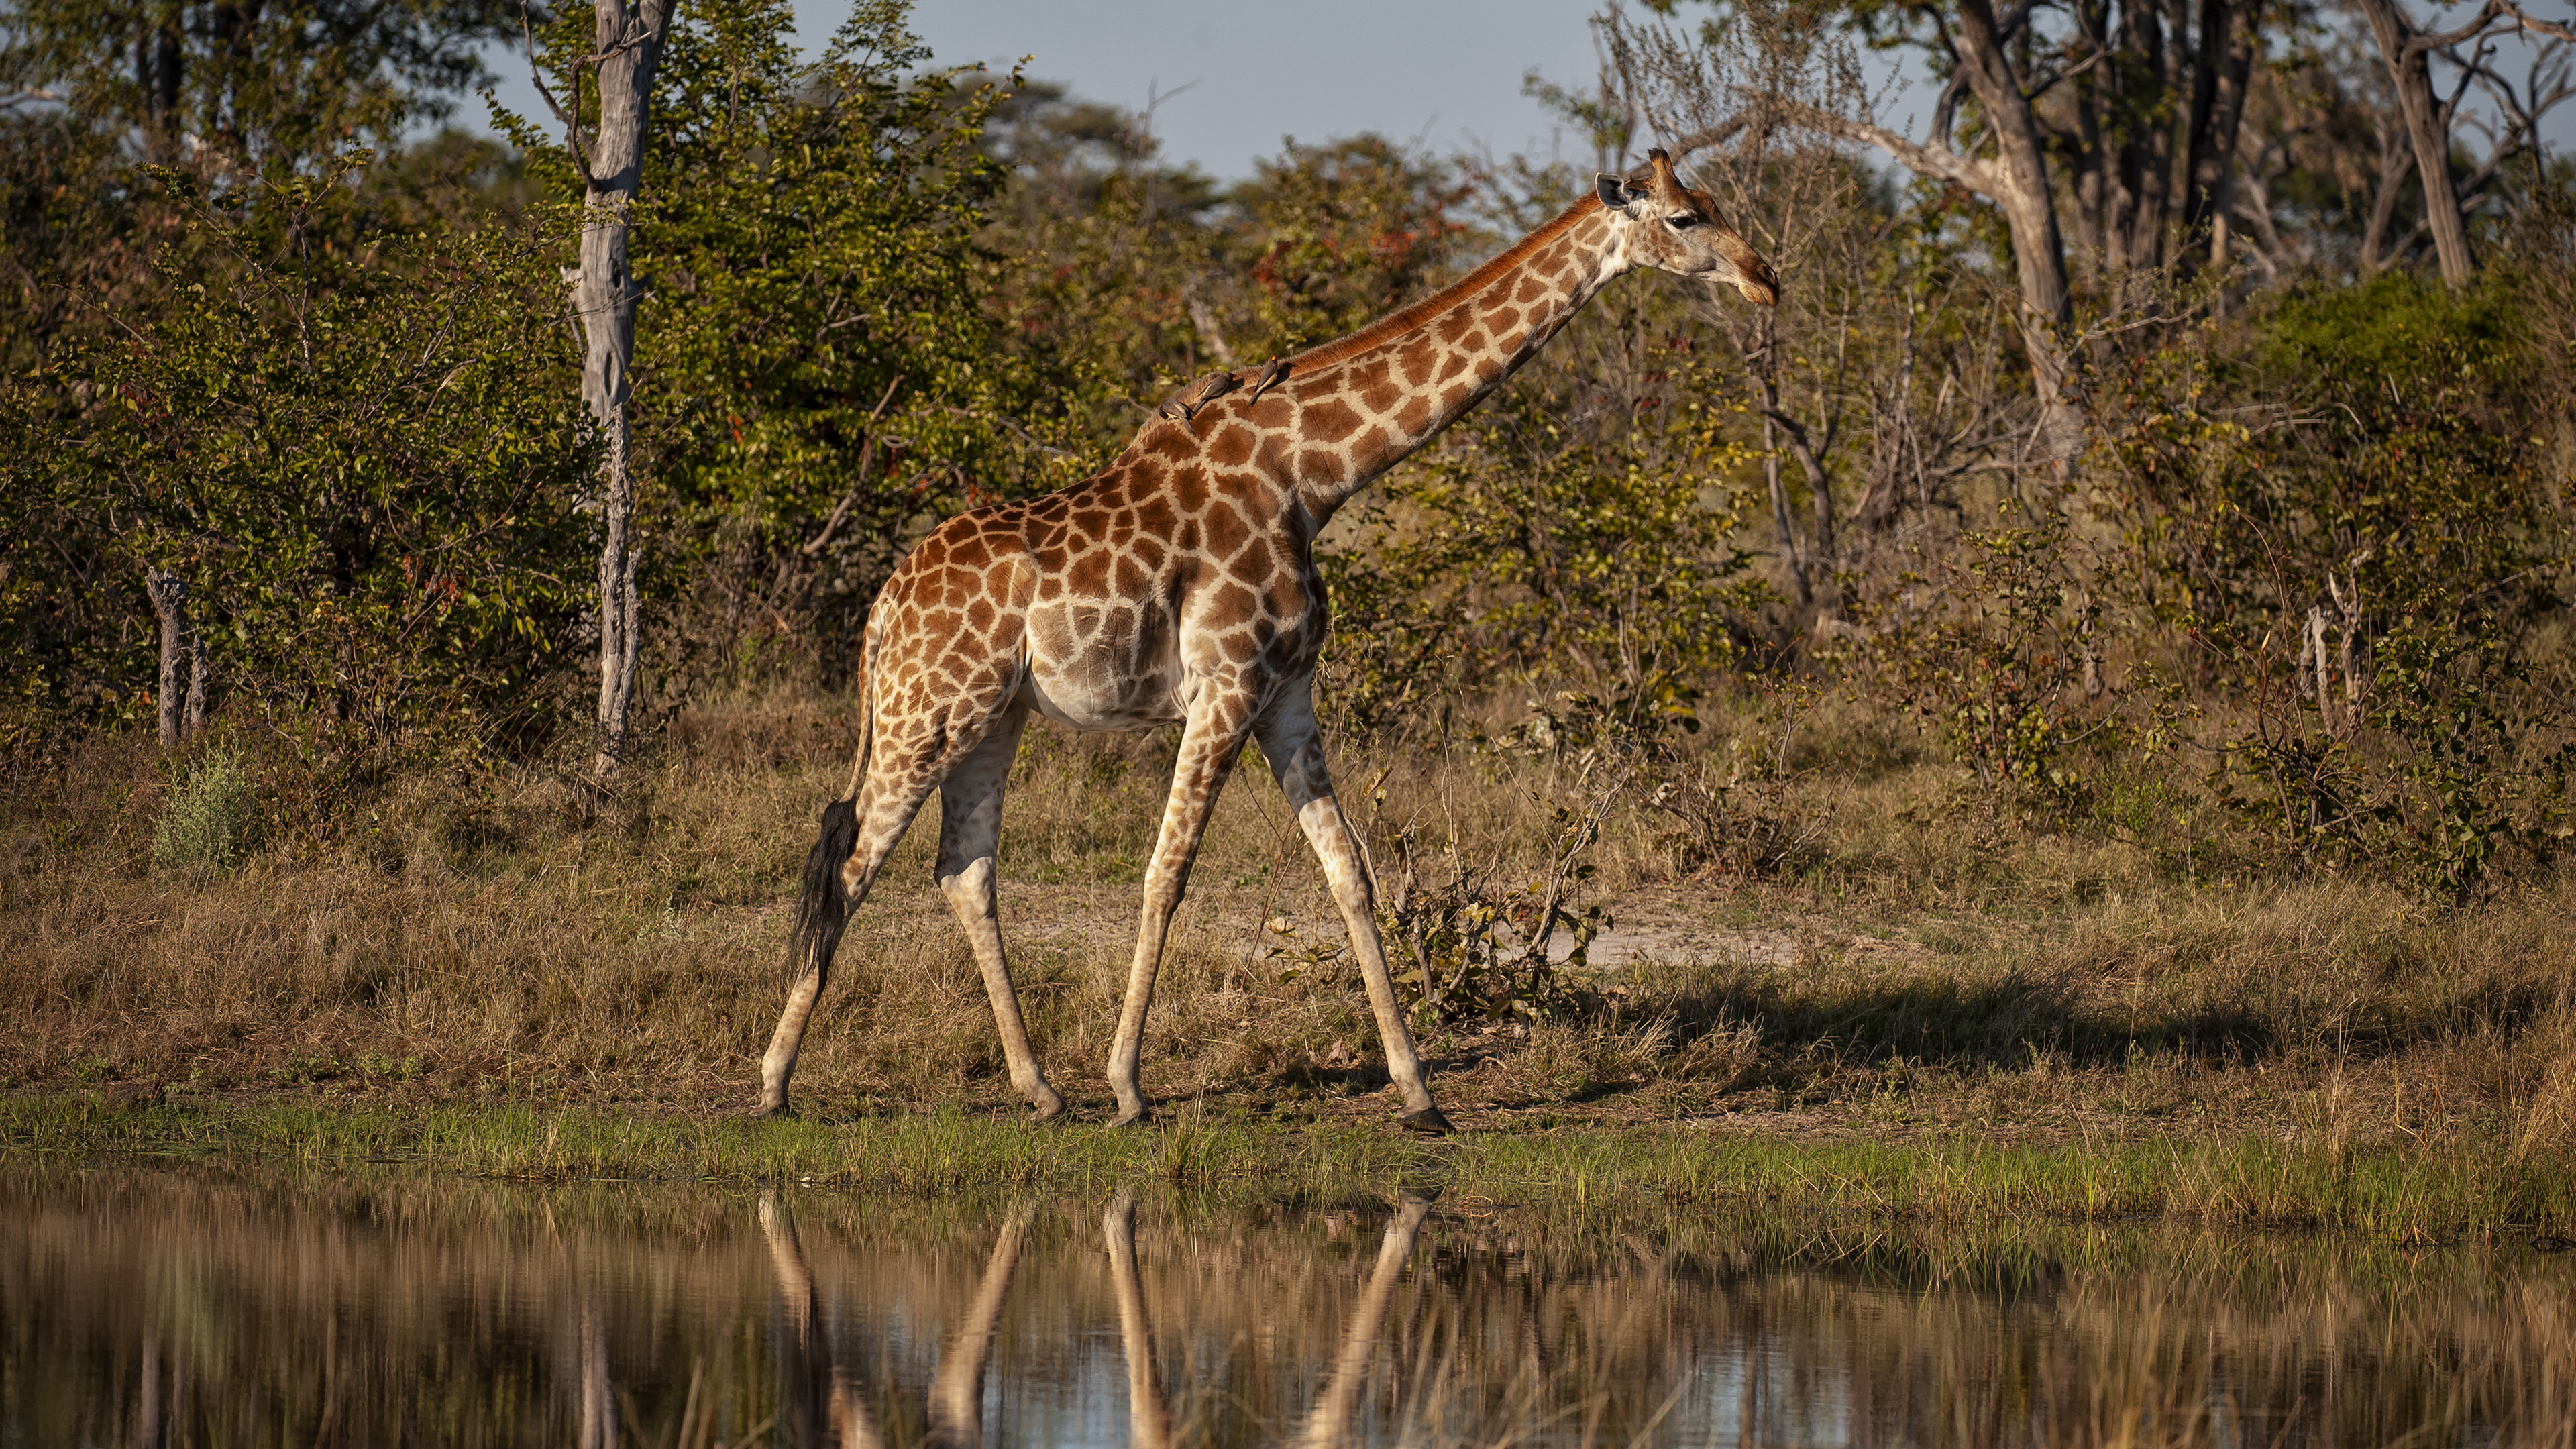 Giraffe Reflections